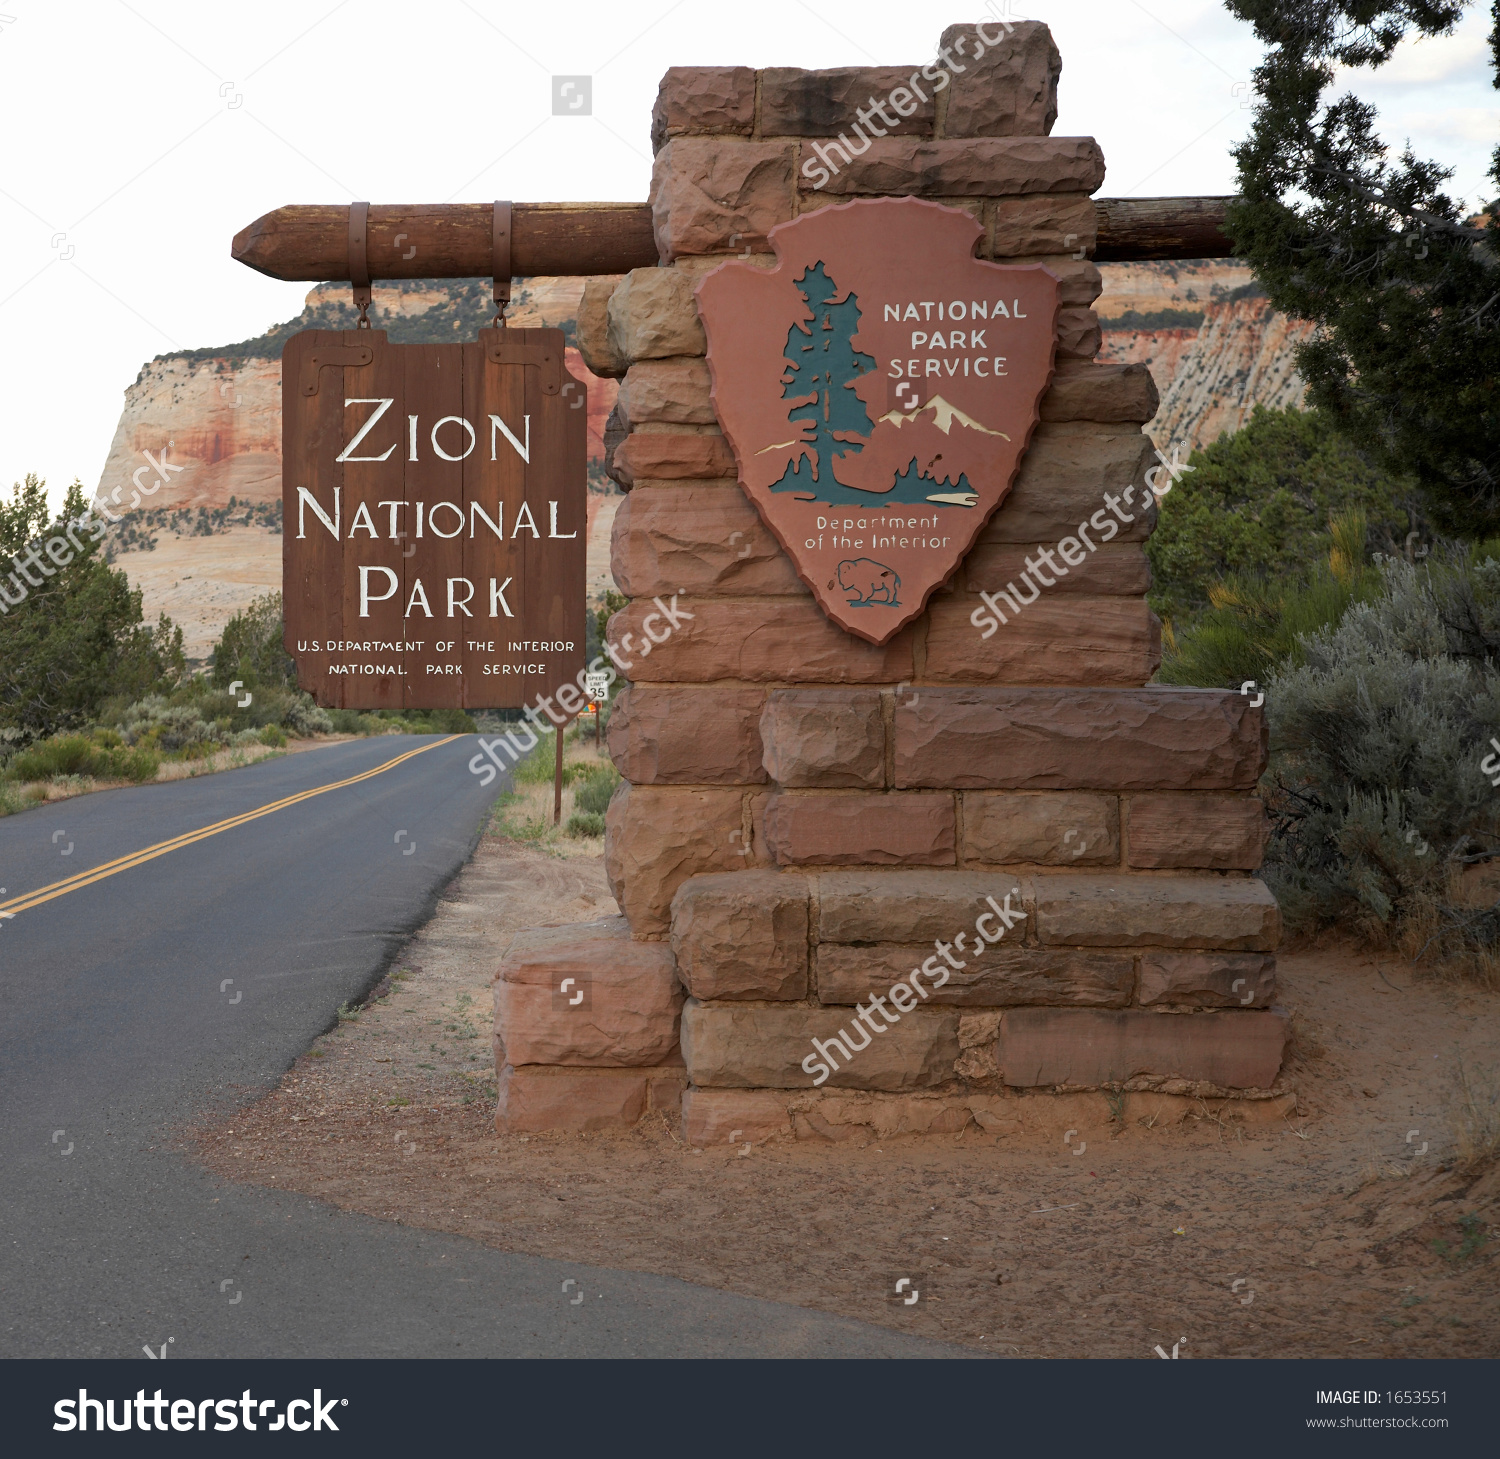 Zion National Park Entrance Sign Stock Photo 1653551 : Shutterstock.